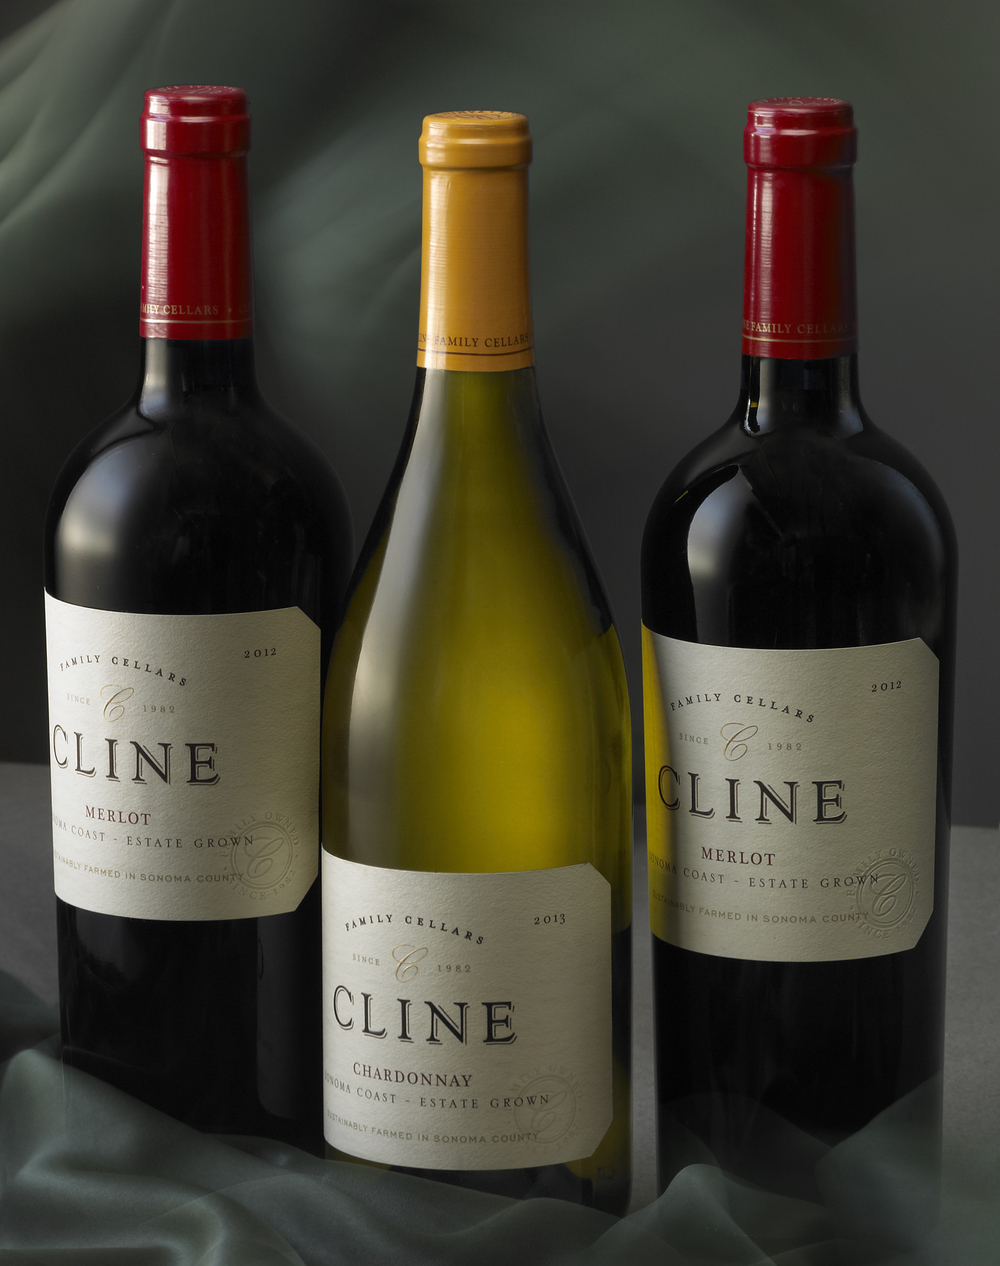 Cline Sonoma Tier_crop.jpg